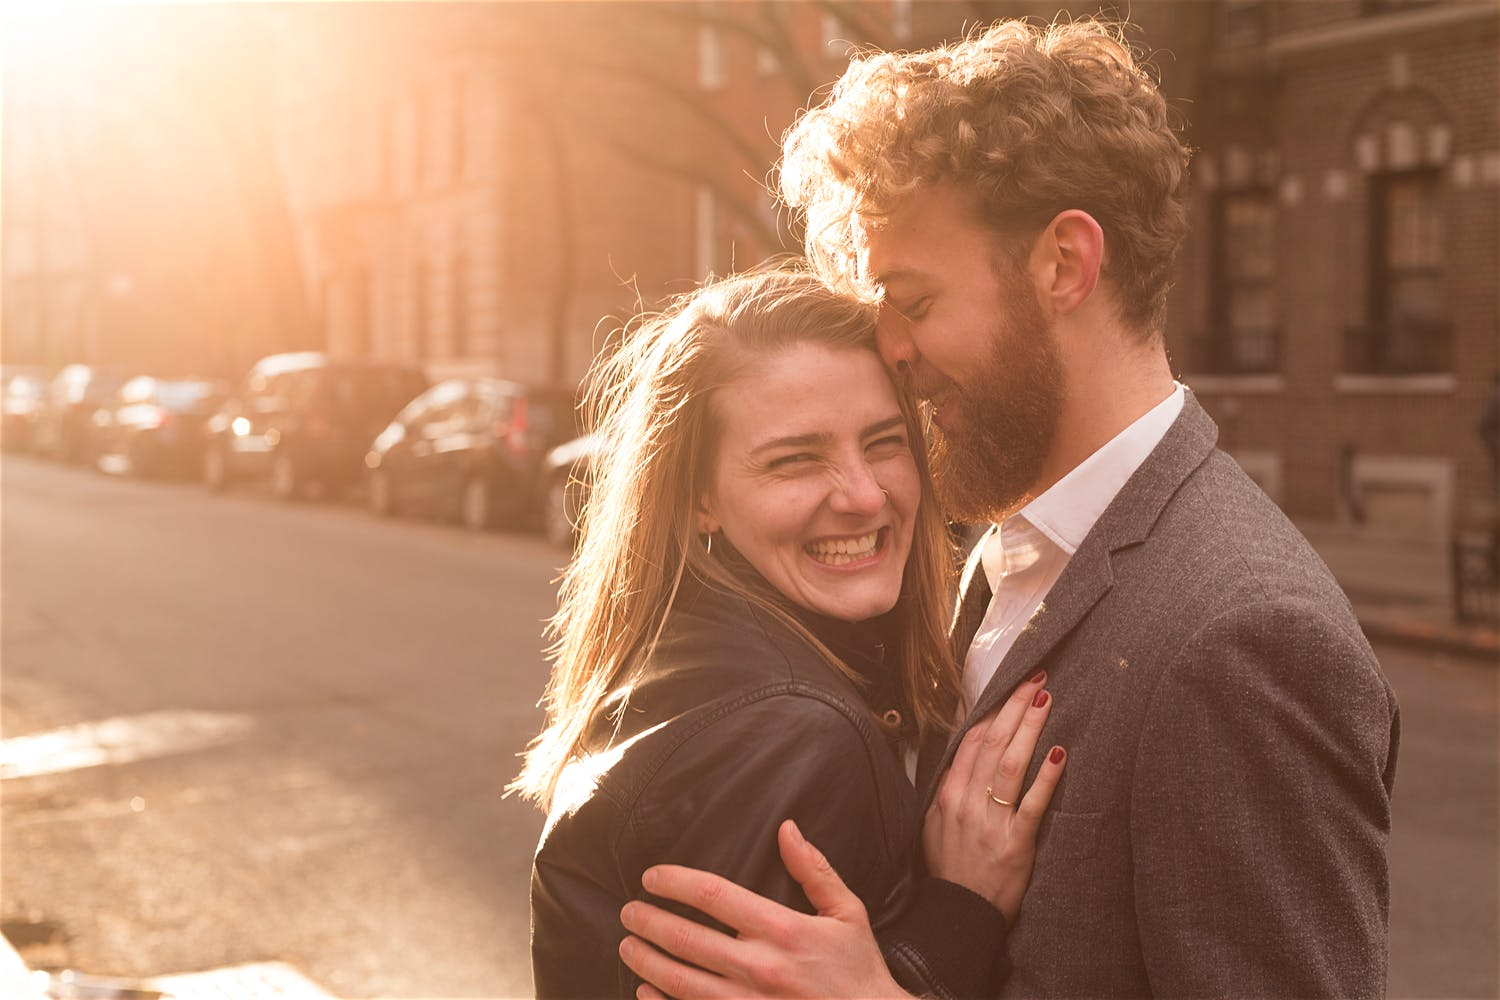 west village street engagement shoot